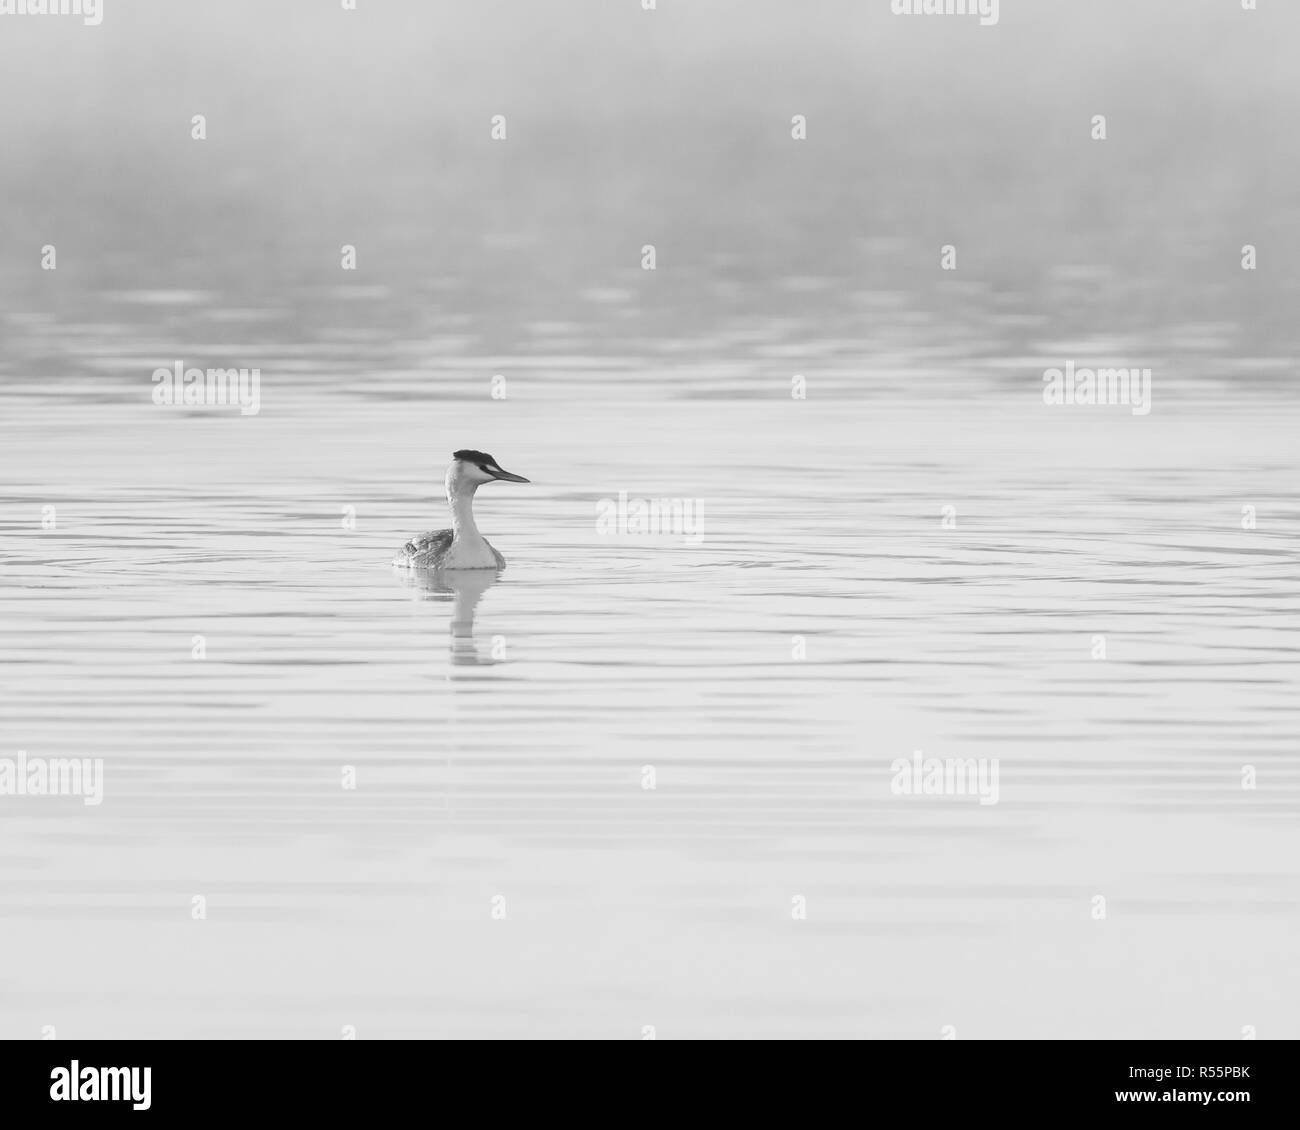 Great Crested Grebe (Podiceps cristatus) foraging on a lake during a sunny and misty Autumnal morning in the UK - Stock Image